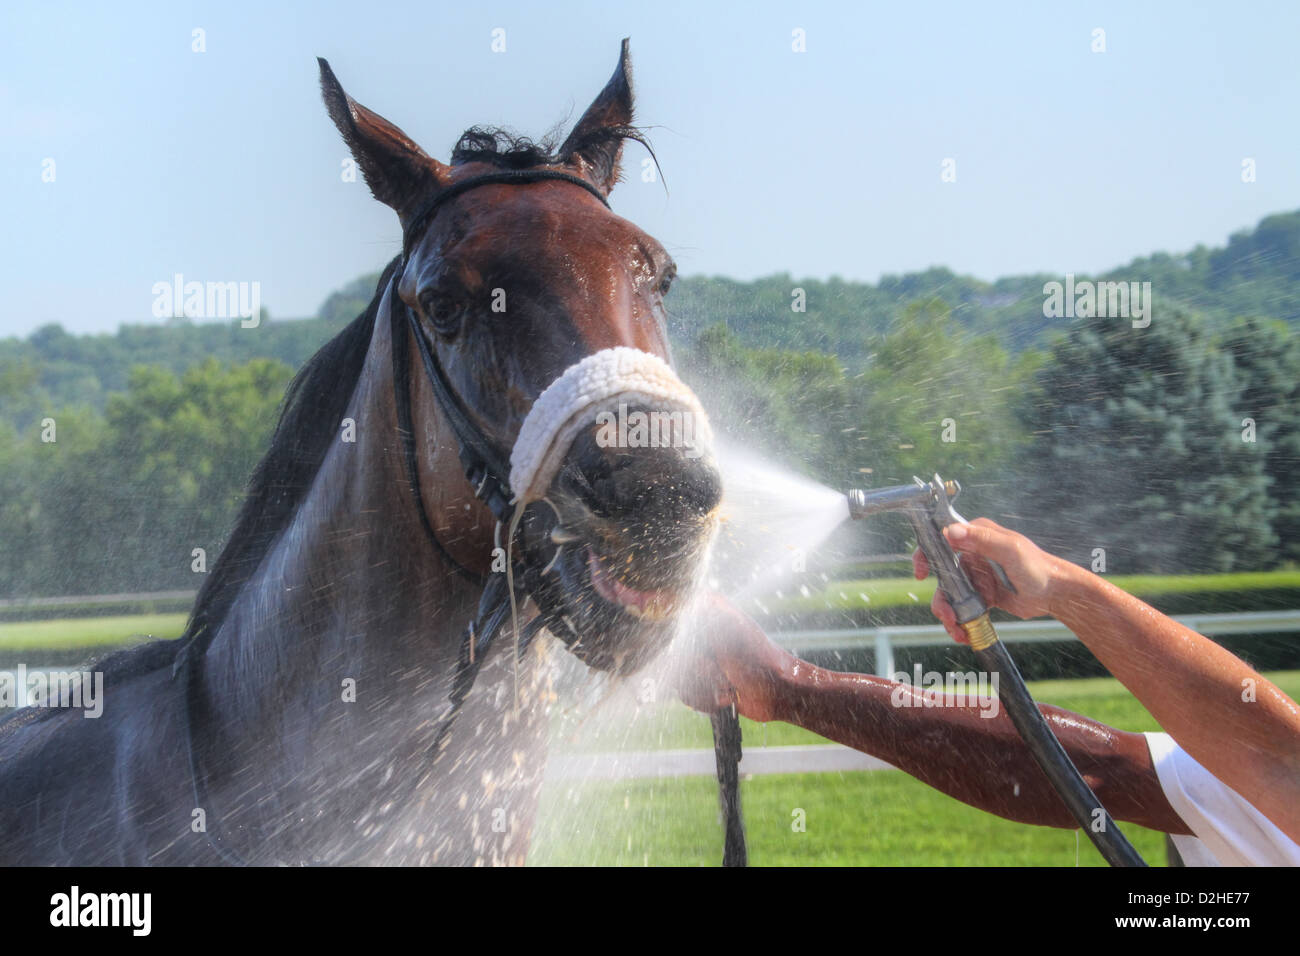 Water spray to cool down the racehorse after a race. Horse Racing at River Downs track, Cincinnati, Ohio, USA. - Stock Image